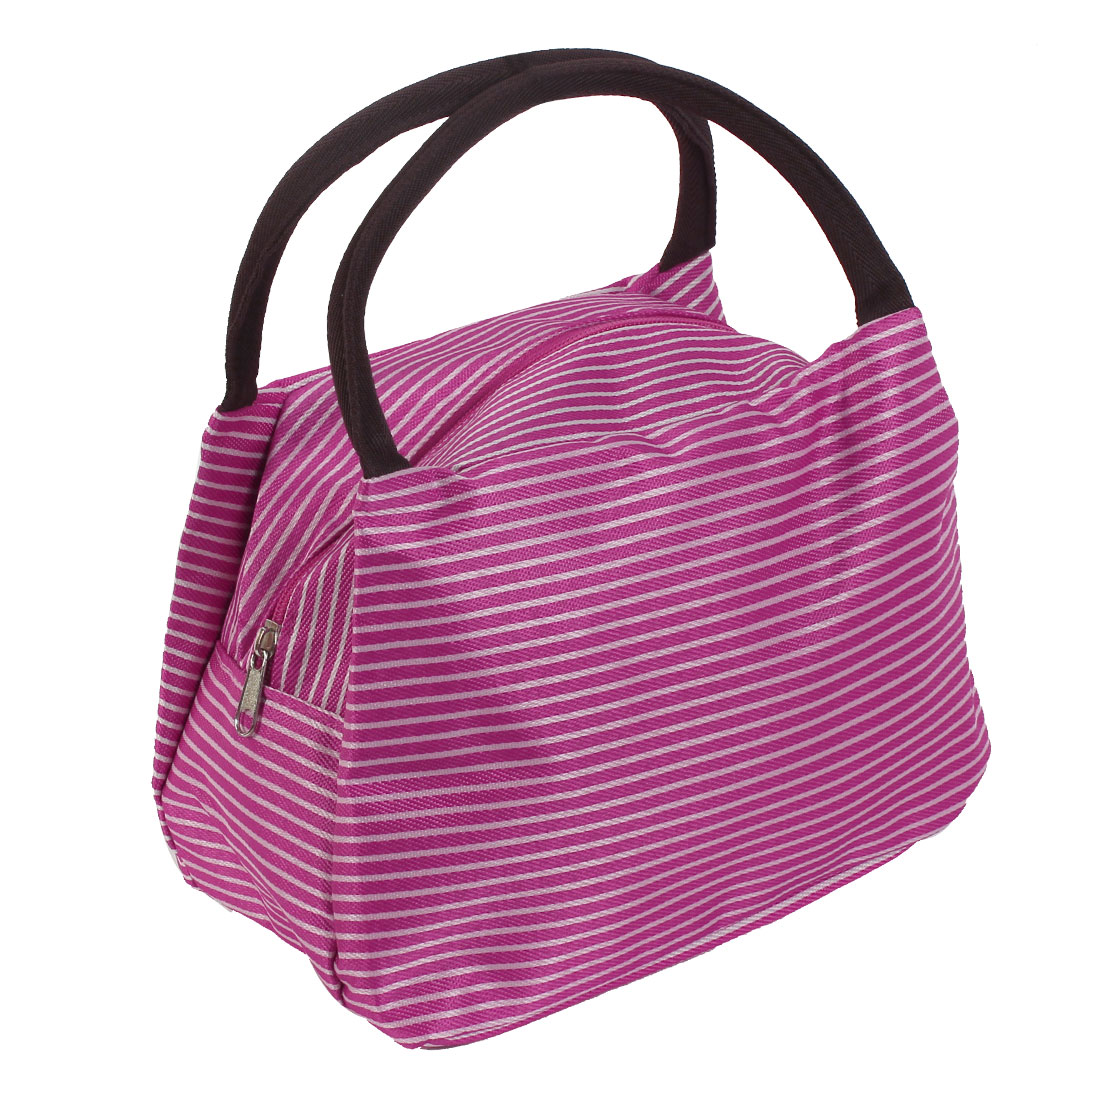 Stripe Pattern Women Toiletry Makeup Pouch Holder Handbag Cosmetic Bags Fuchsia